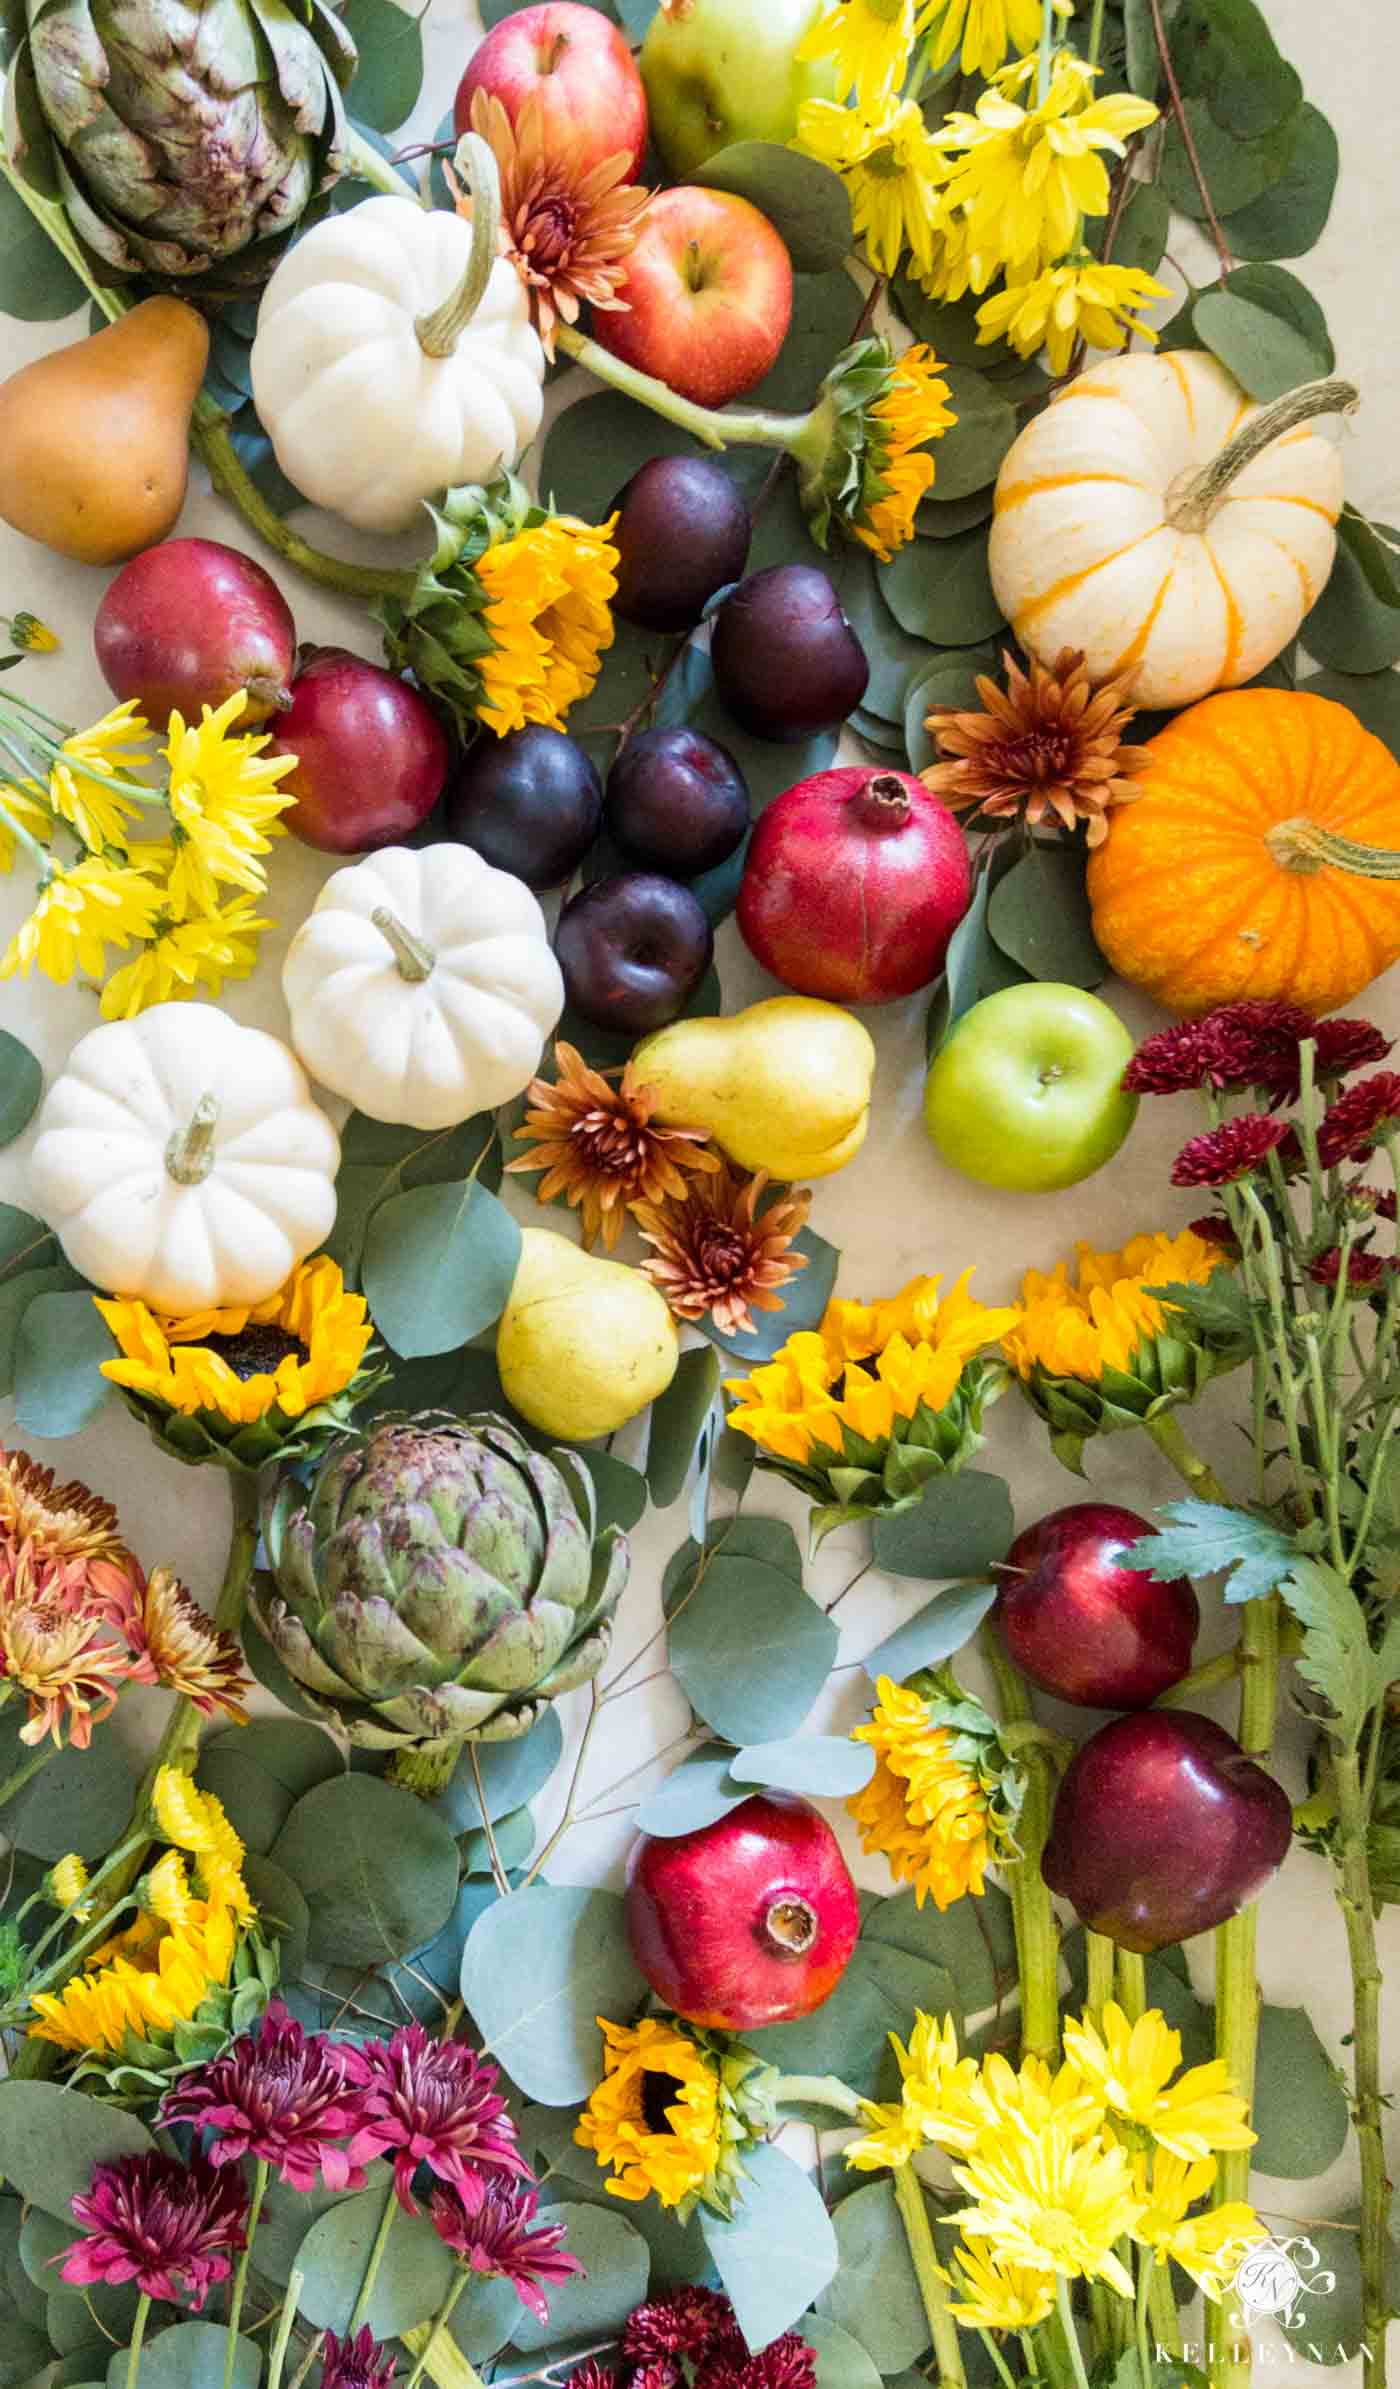 Fall Harvest Ideas for an Amazing Centerpiece